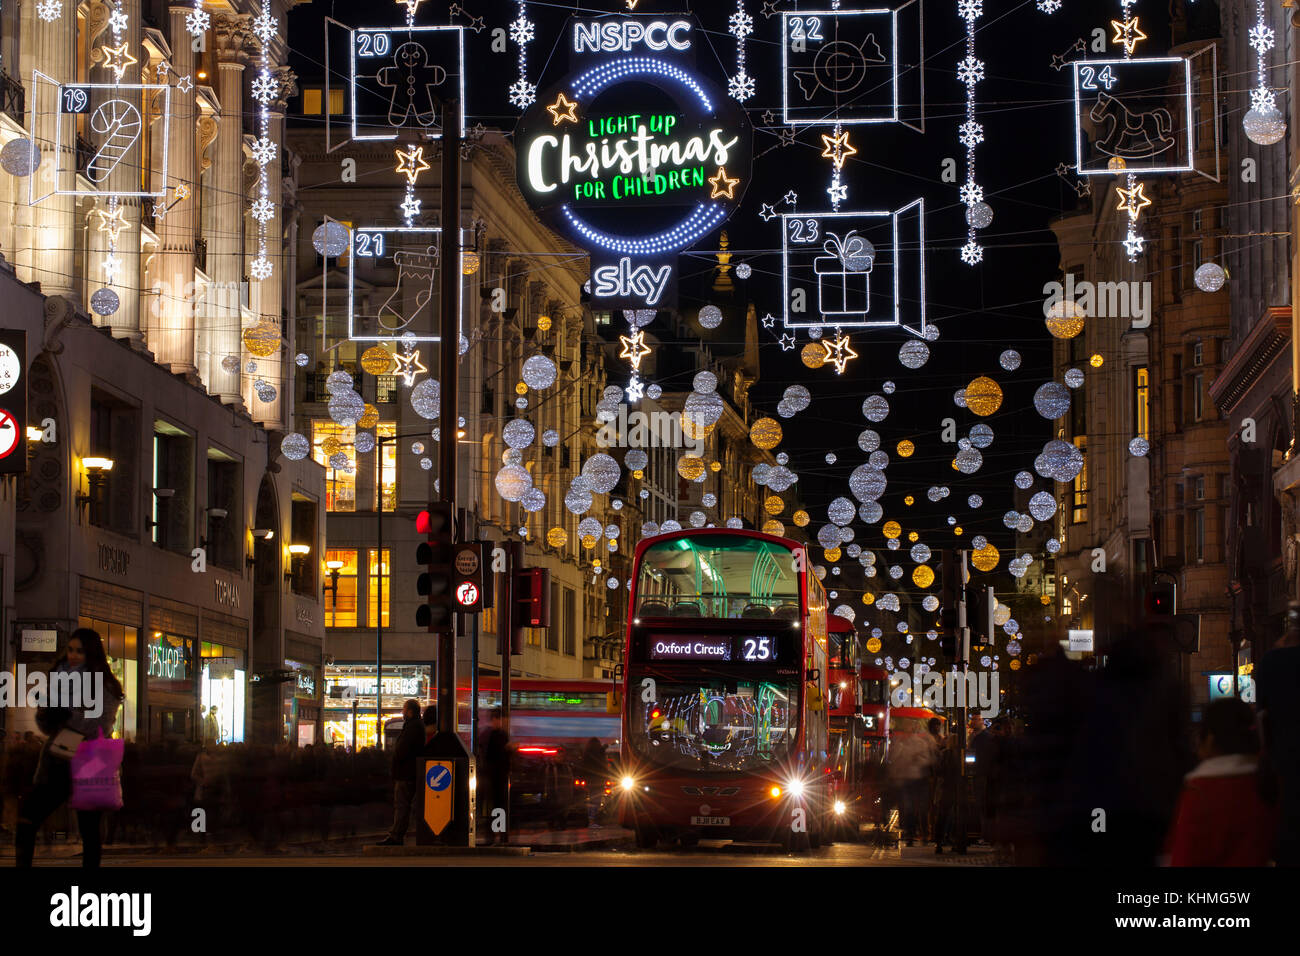 Oxford Street Weihnachtsbeleuchtung.London Uk November 17th 2017 Christmas Lights On Oxford Street